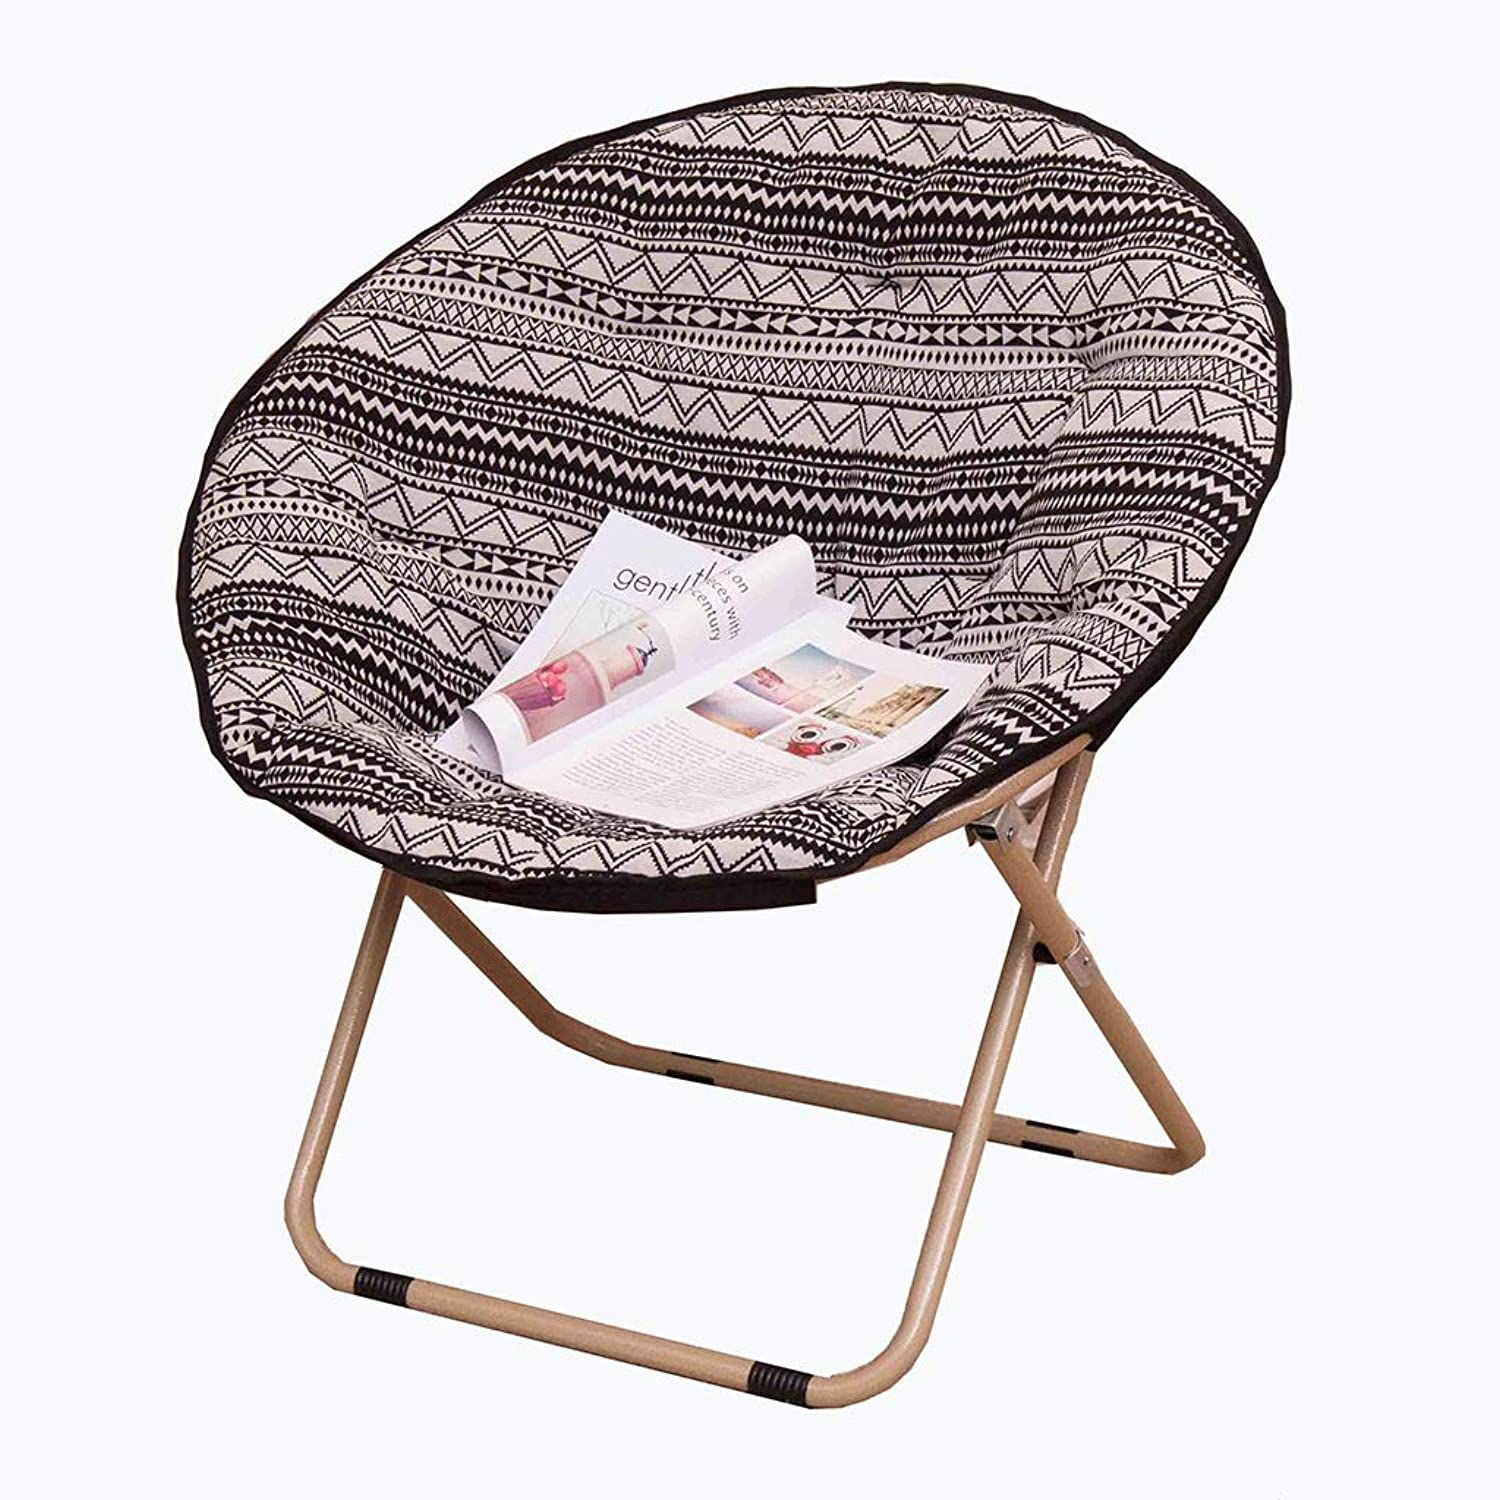 YD Lazy Chair - Recliner Balcony Adult Moon Chair Large Foldable Moon Chair No Footstool (color   D)